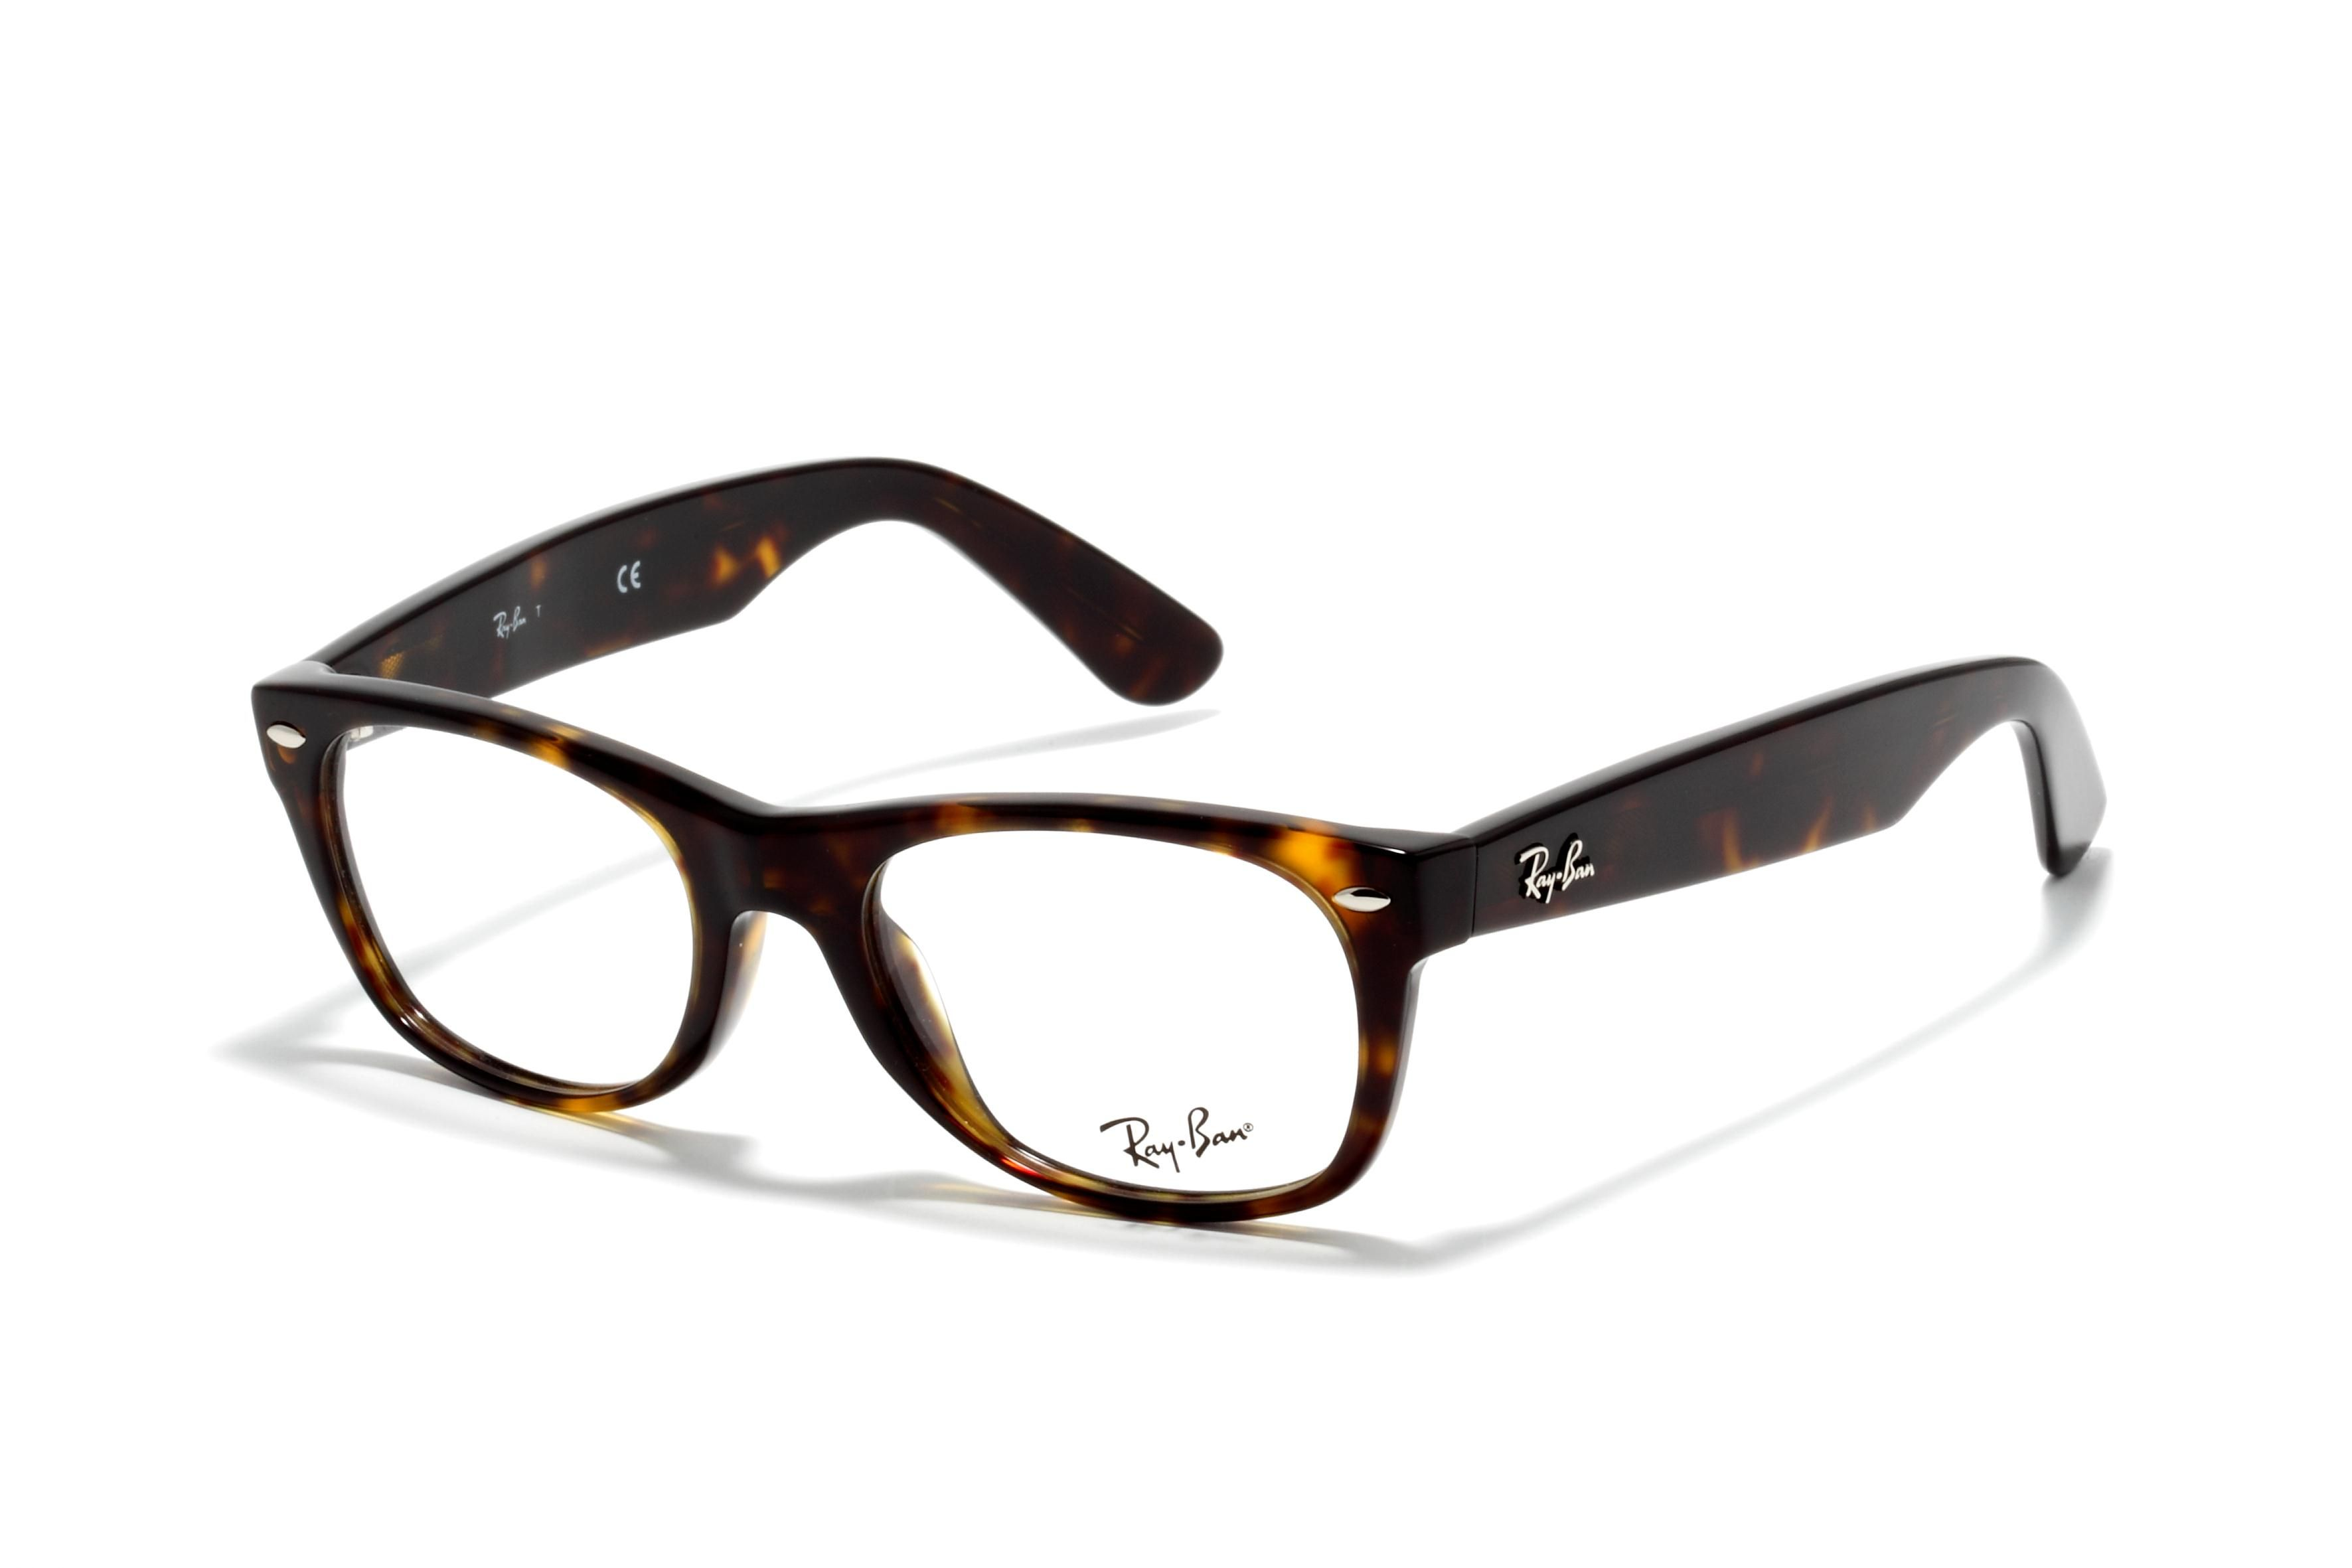 Lunettes Ray-Ban 5184 - 2012